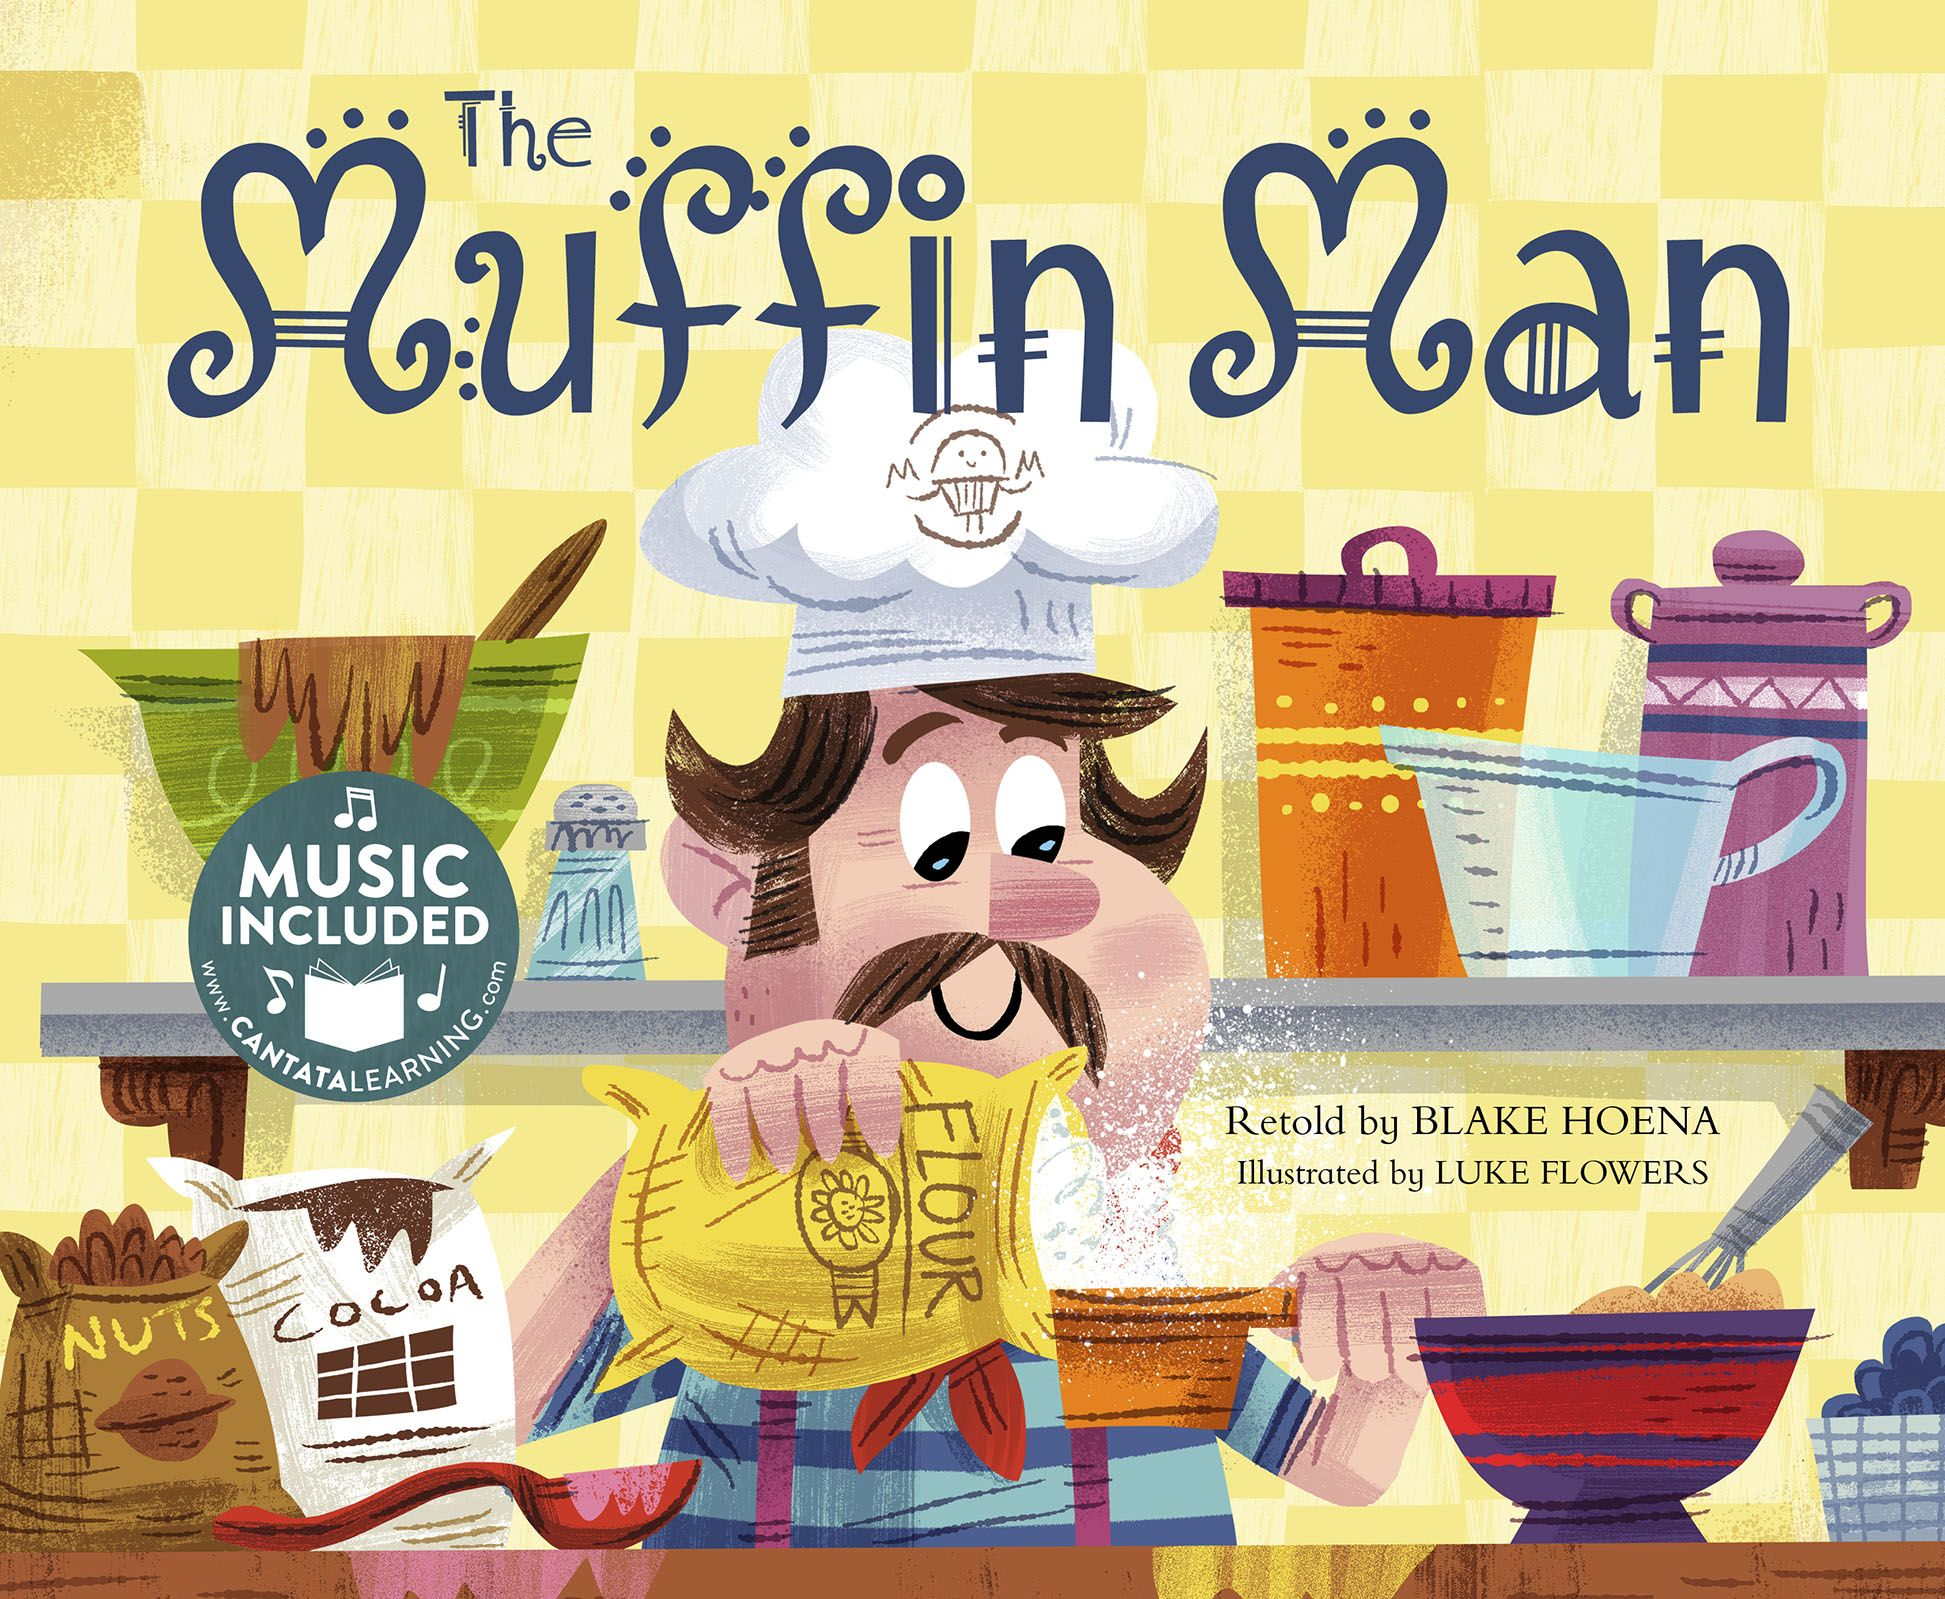 Learn About The Baker And His Tasty Treats Muffinman